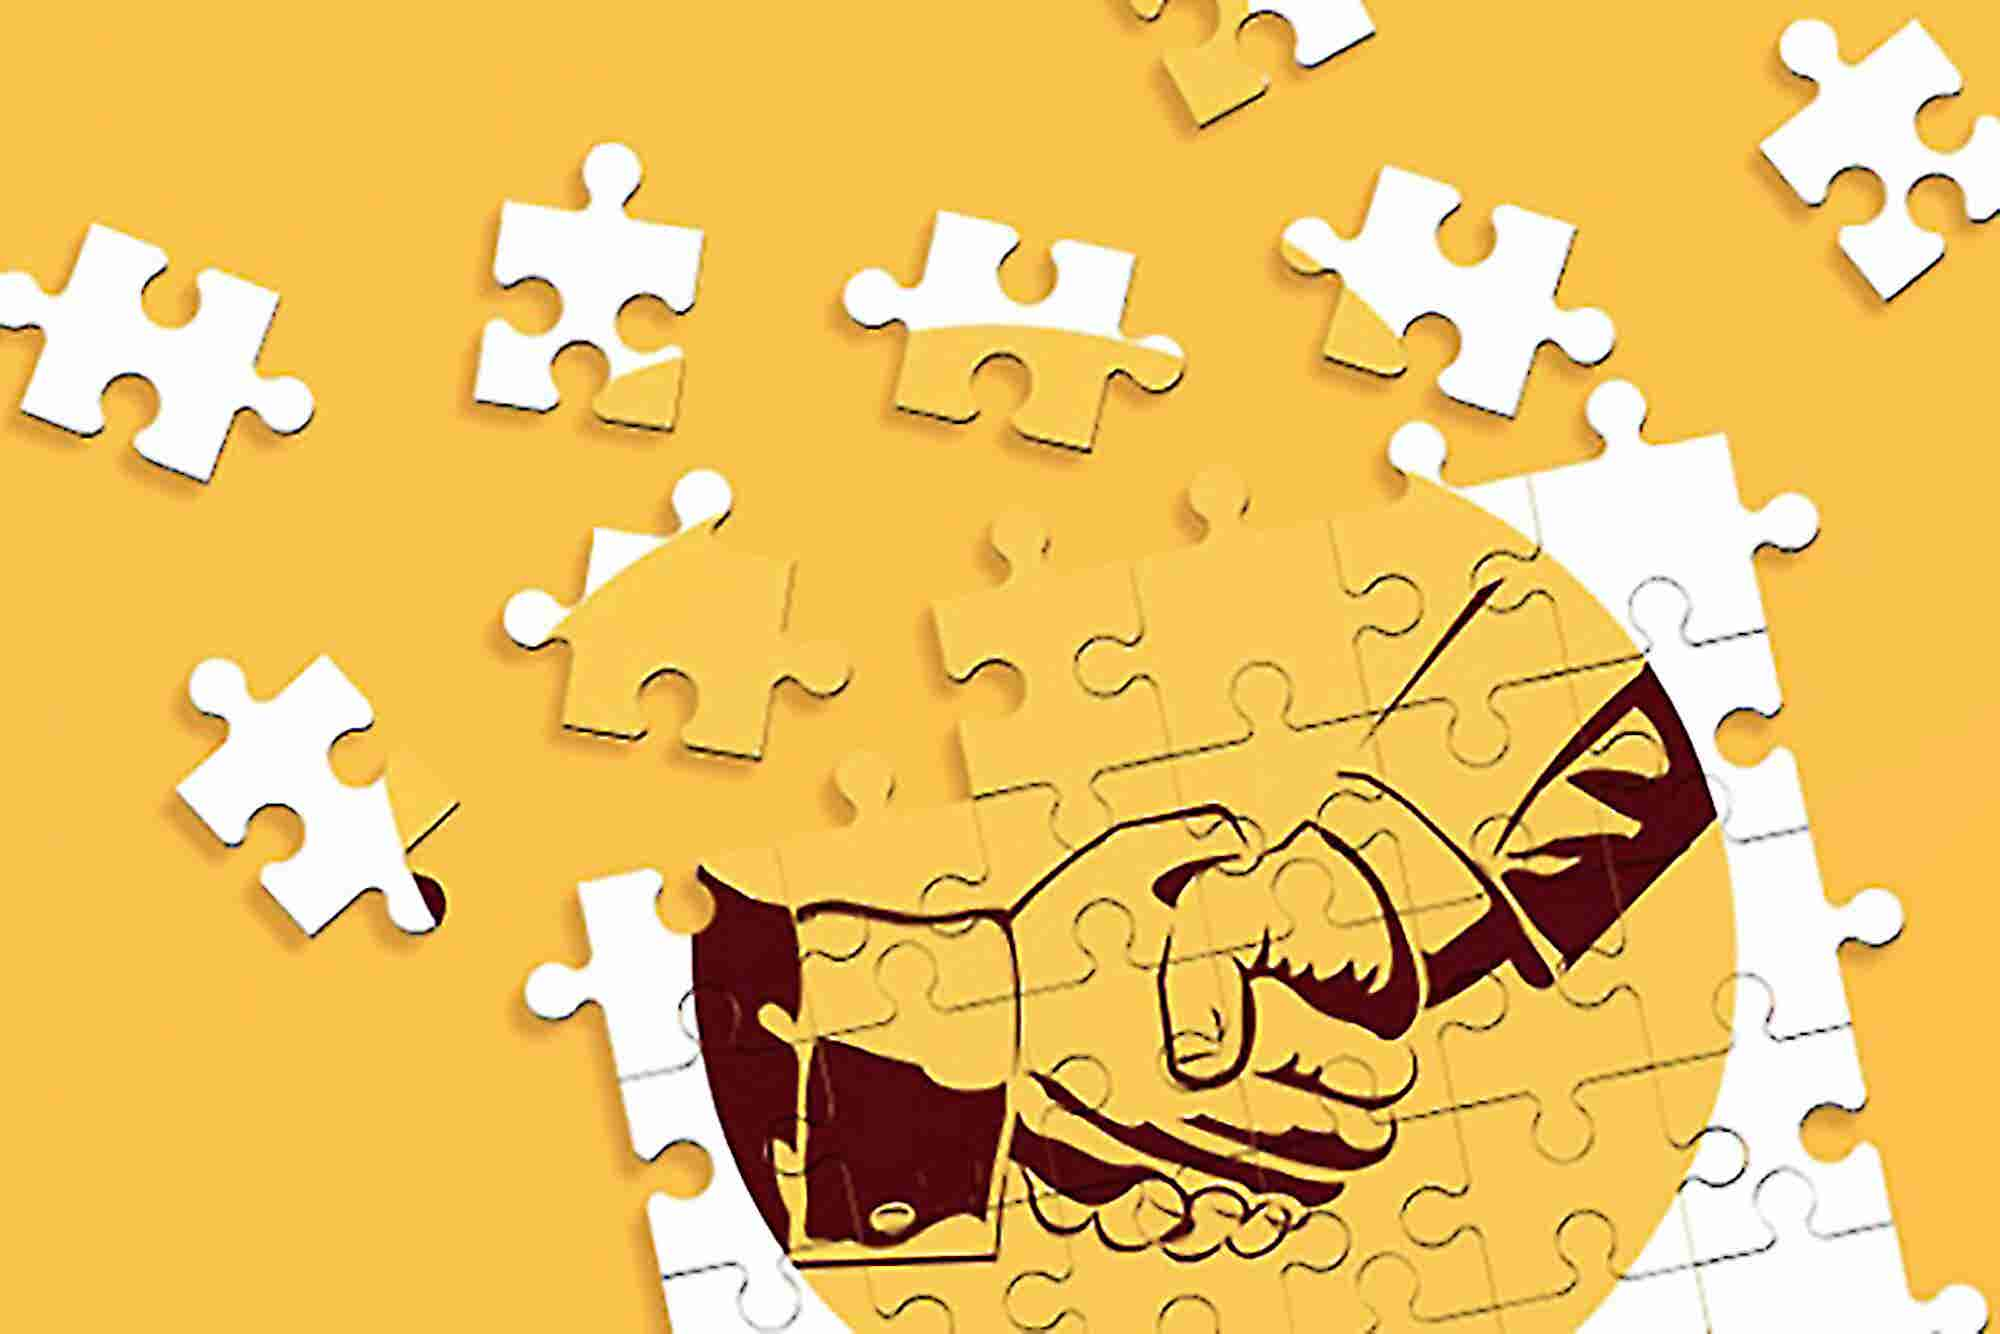 10 Questions to Ask Before Committing to a Business Partner